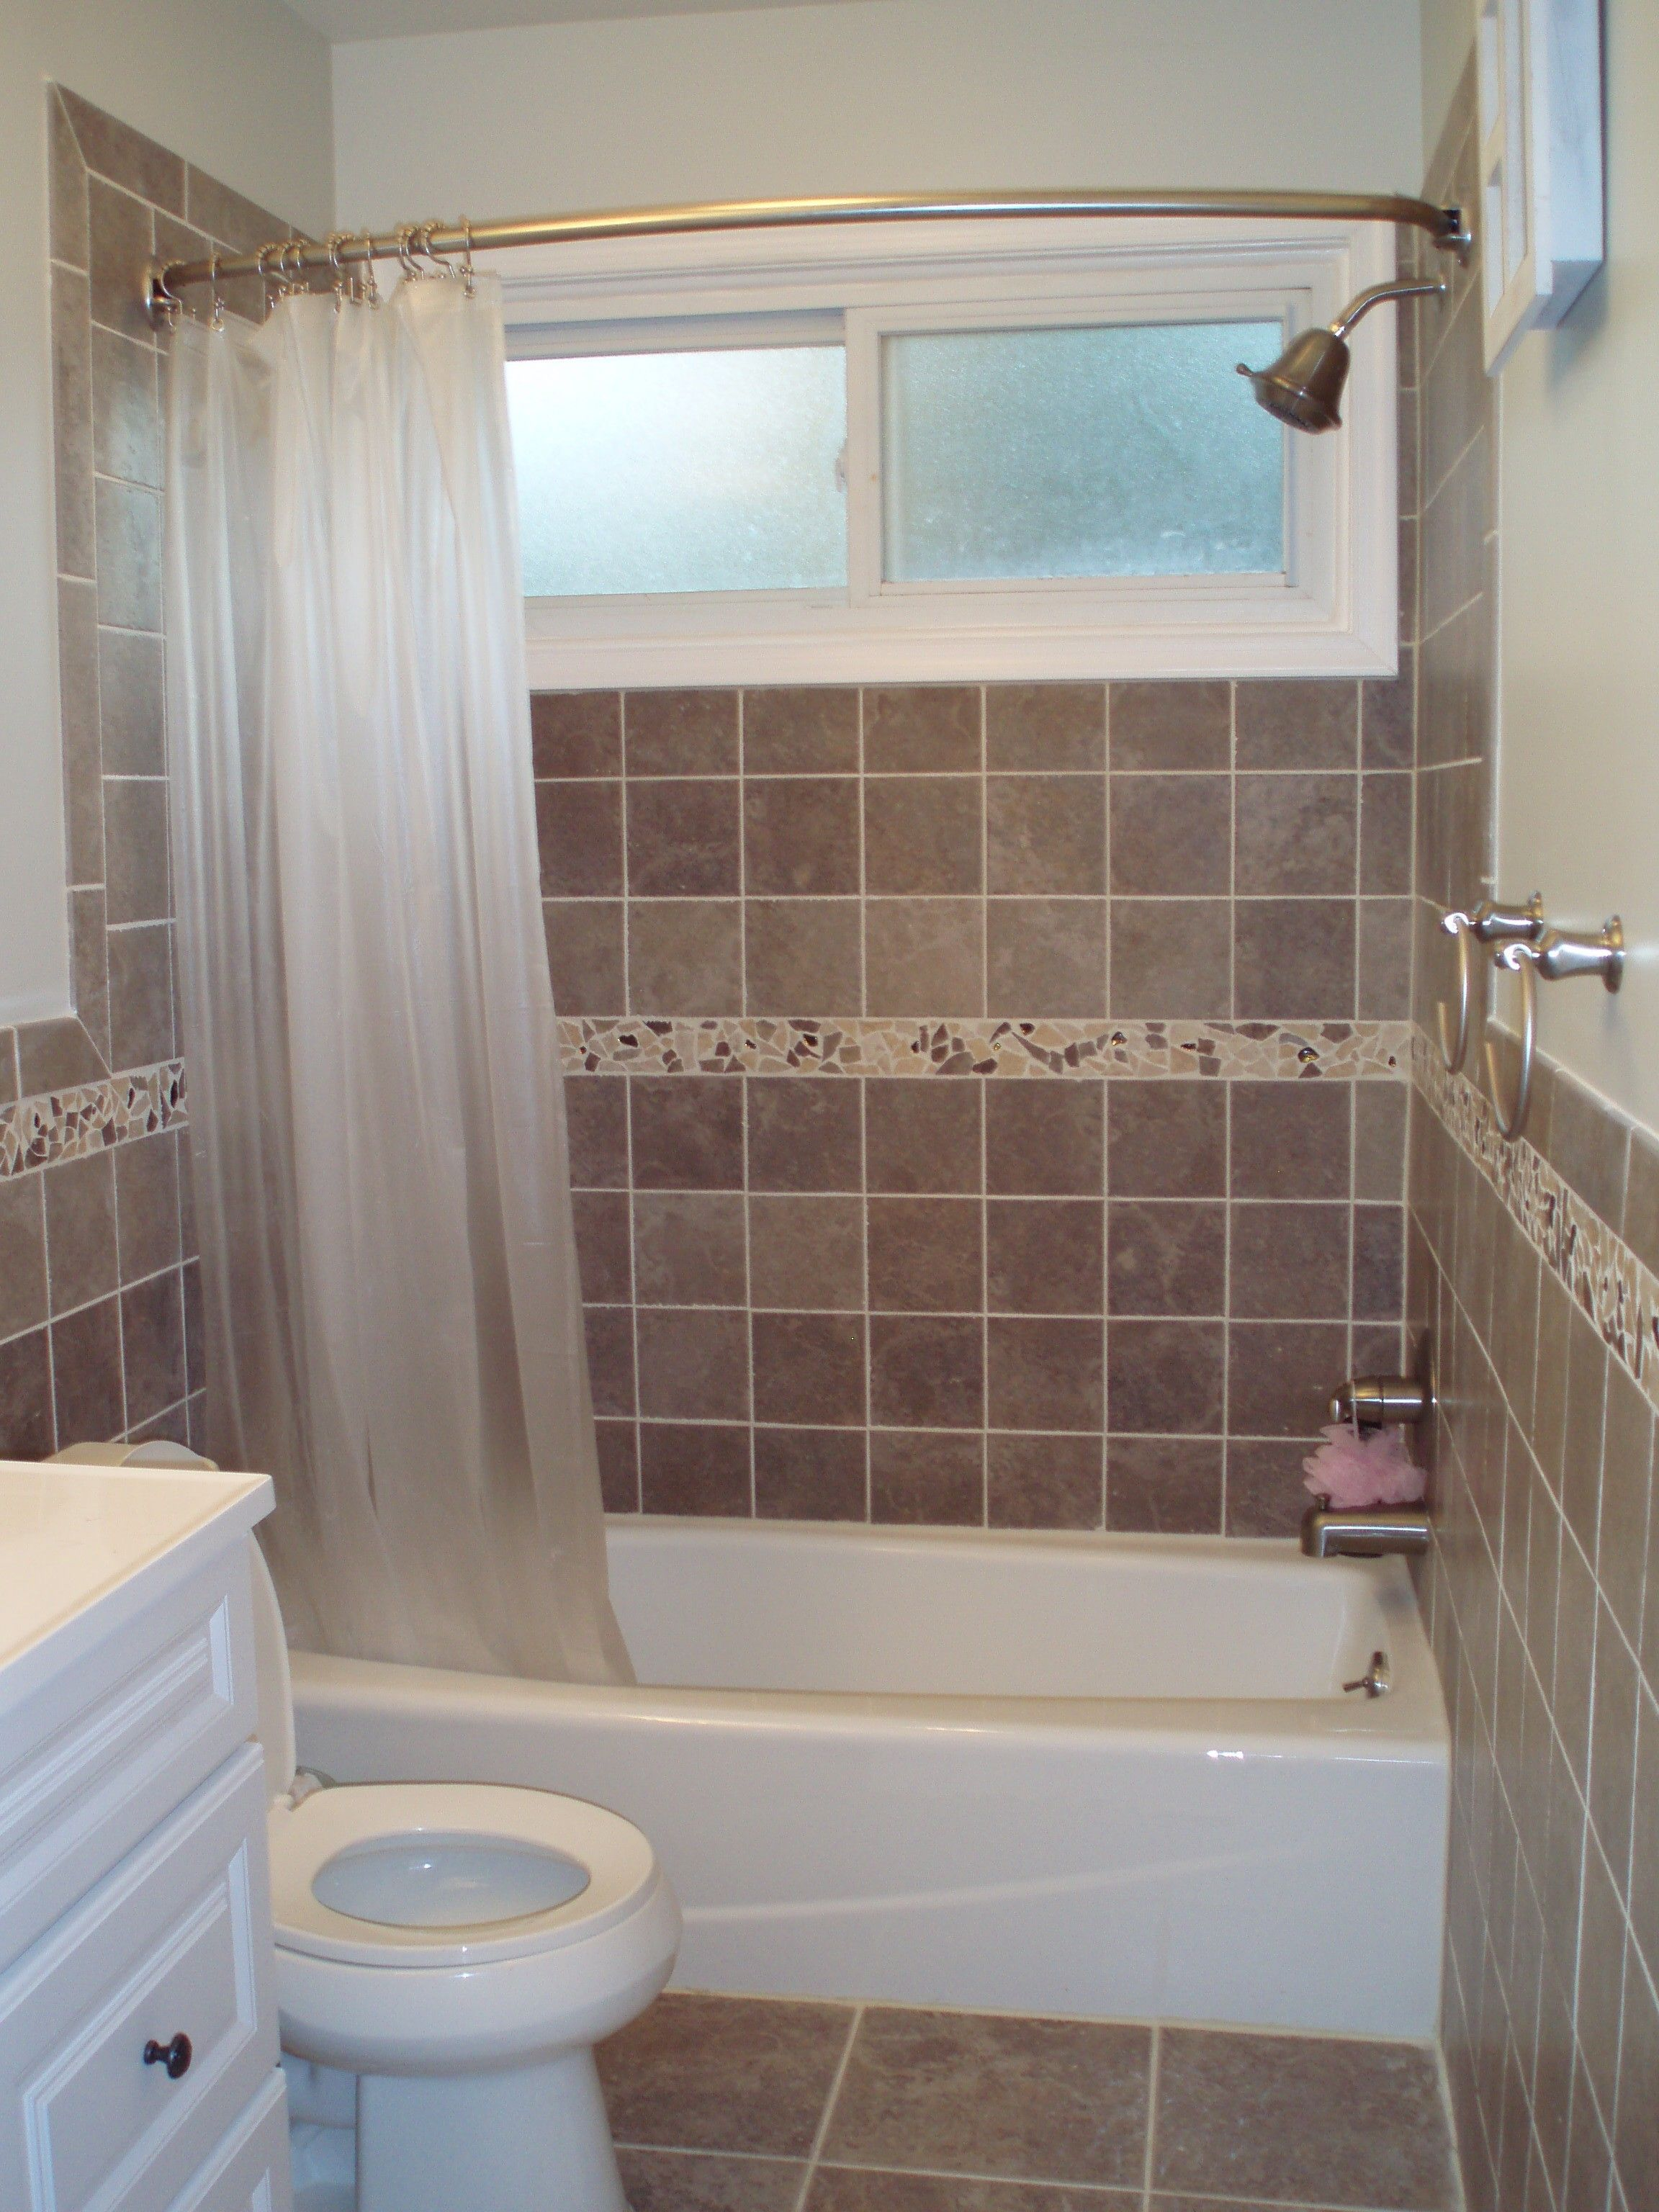 Bathroom Brown Tiles Bathroom Wall Themes With Rectangle White - Shower curtains for bathroom